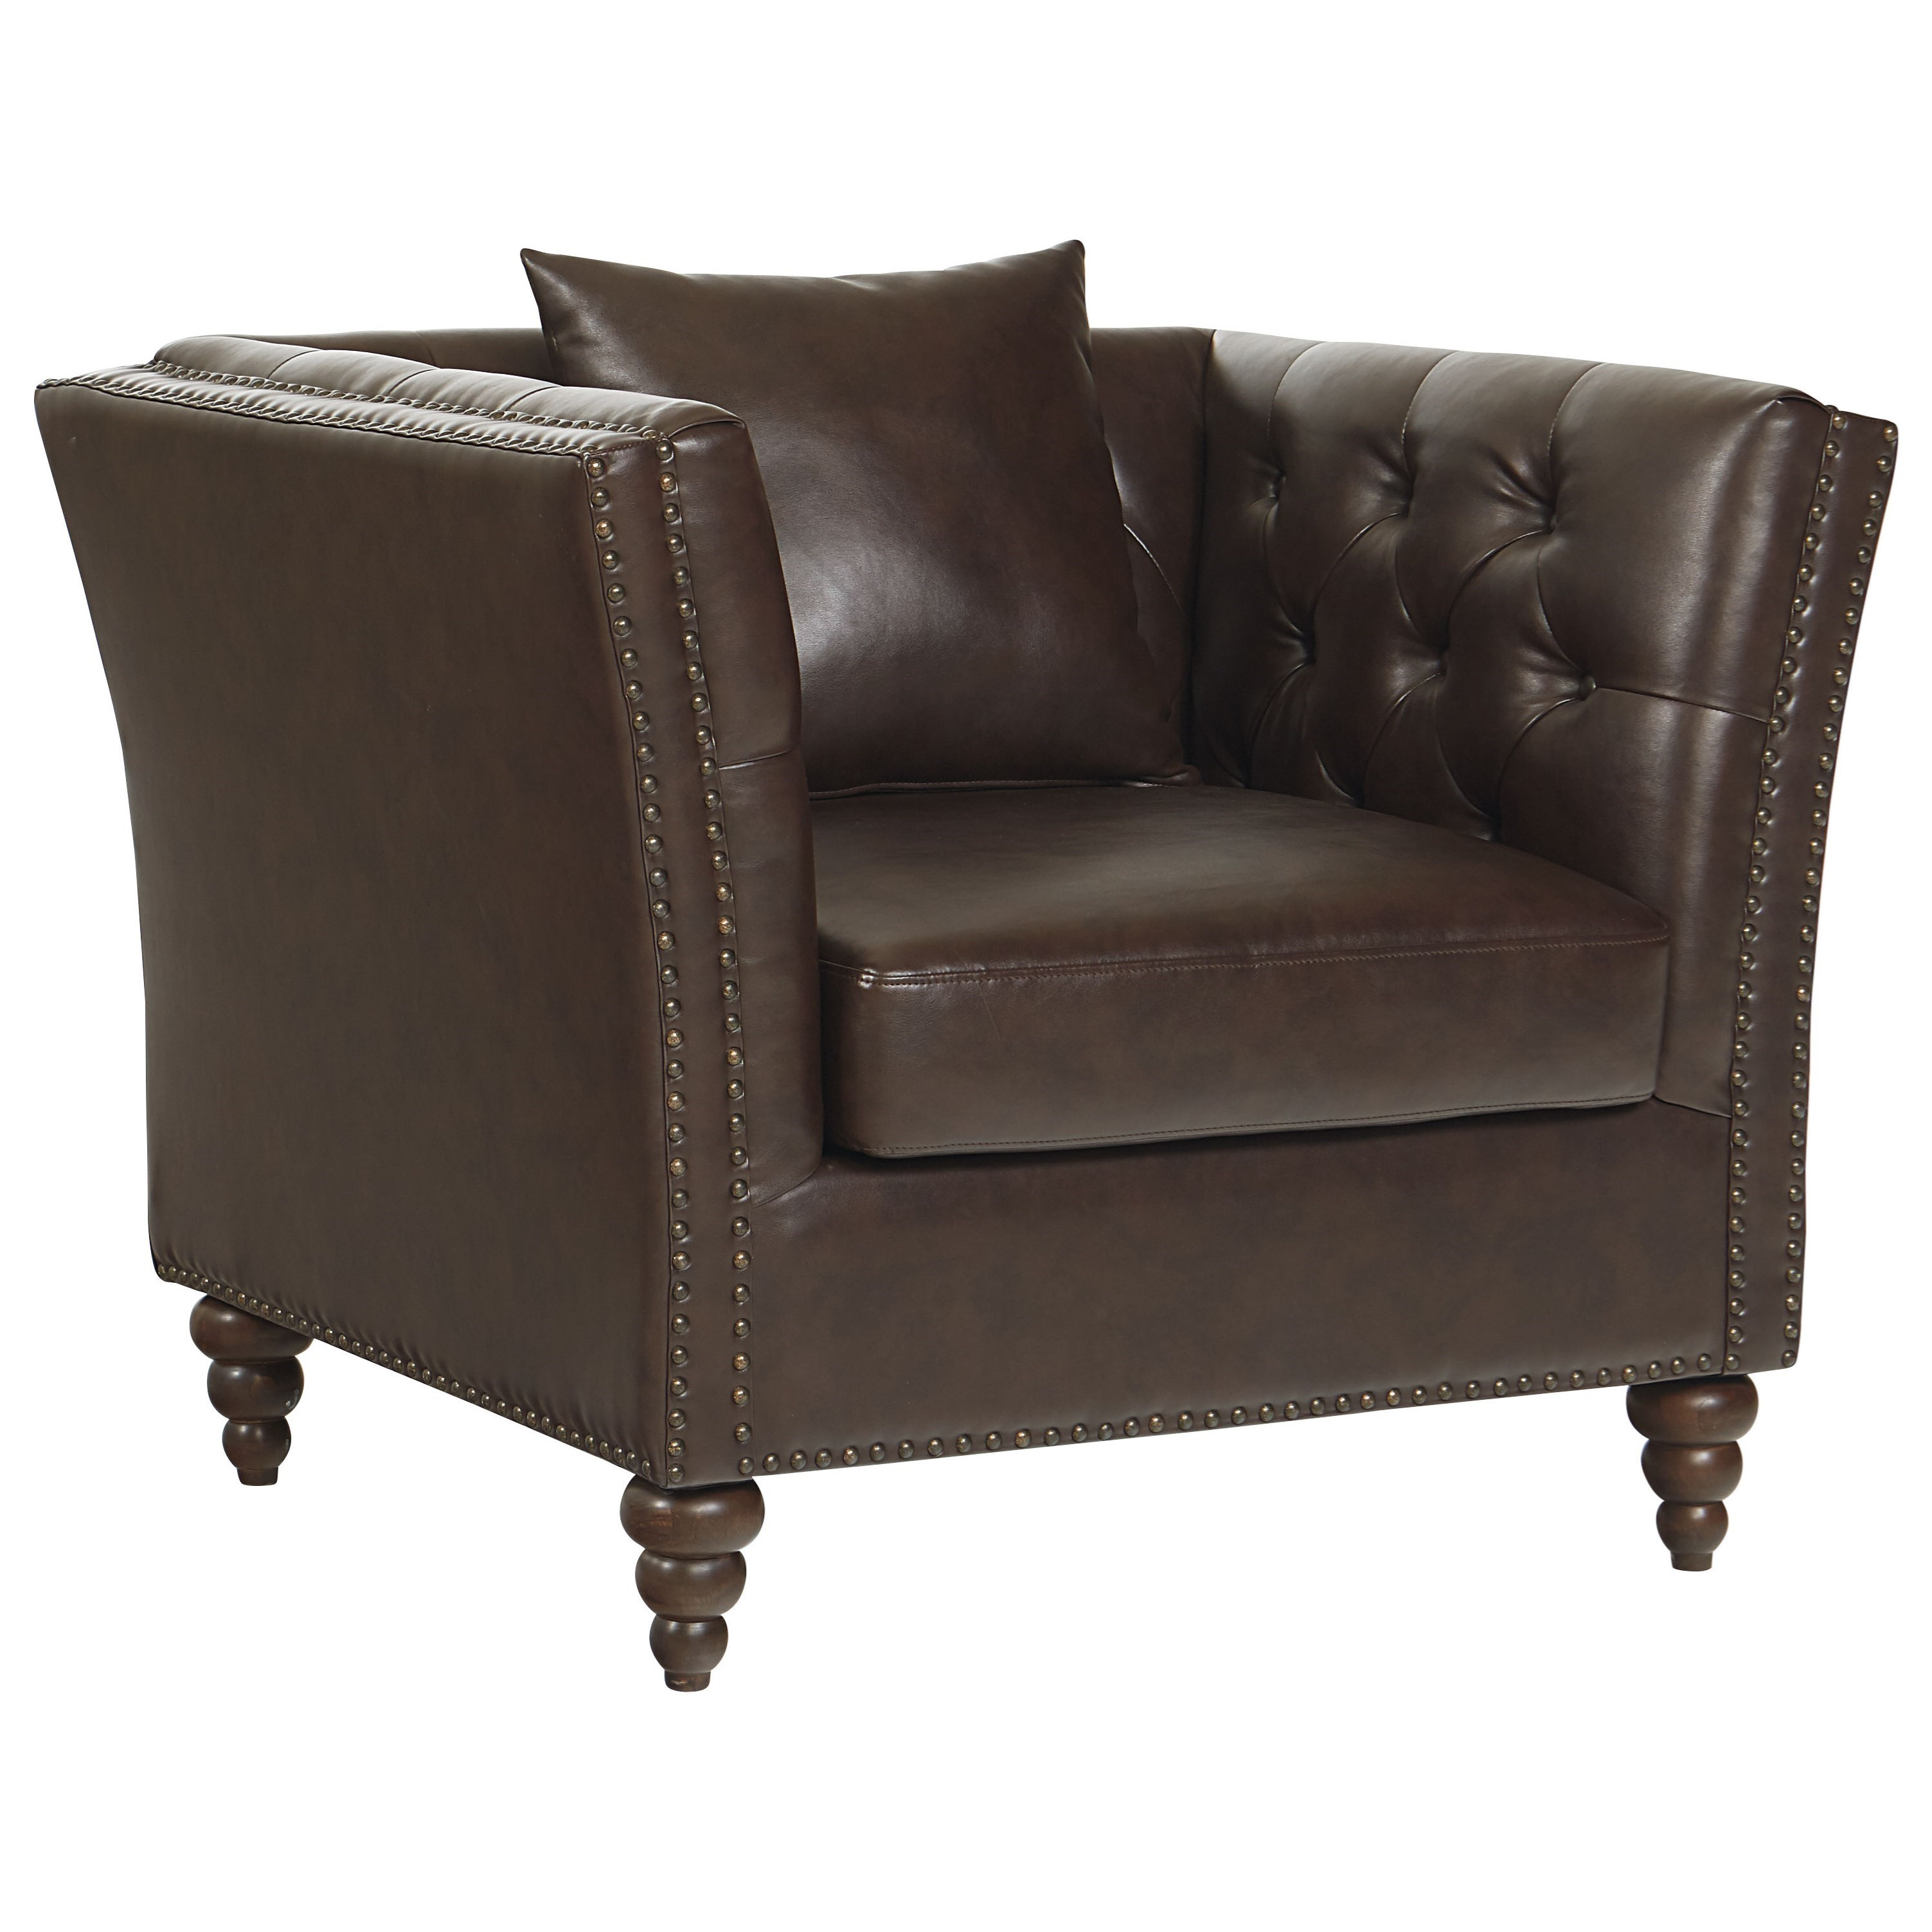 chair standards gold covers with black sash standard furniture westerly upholstered